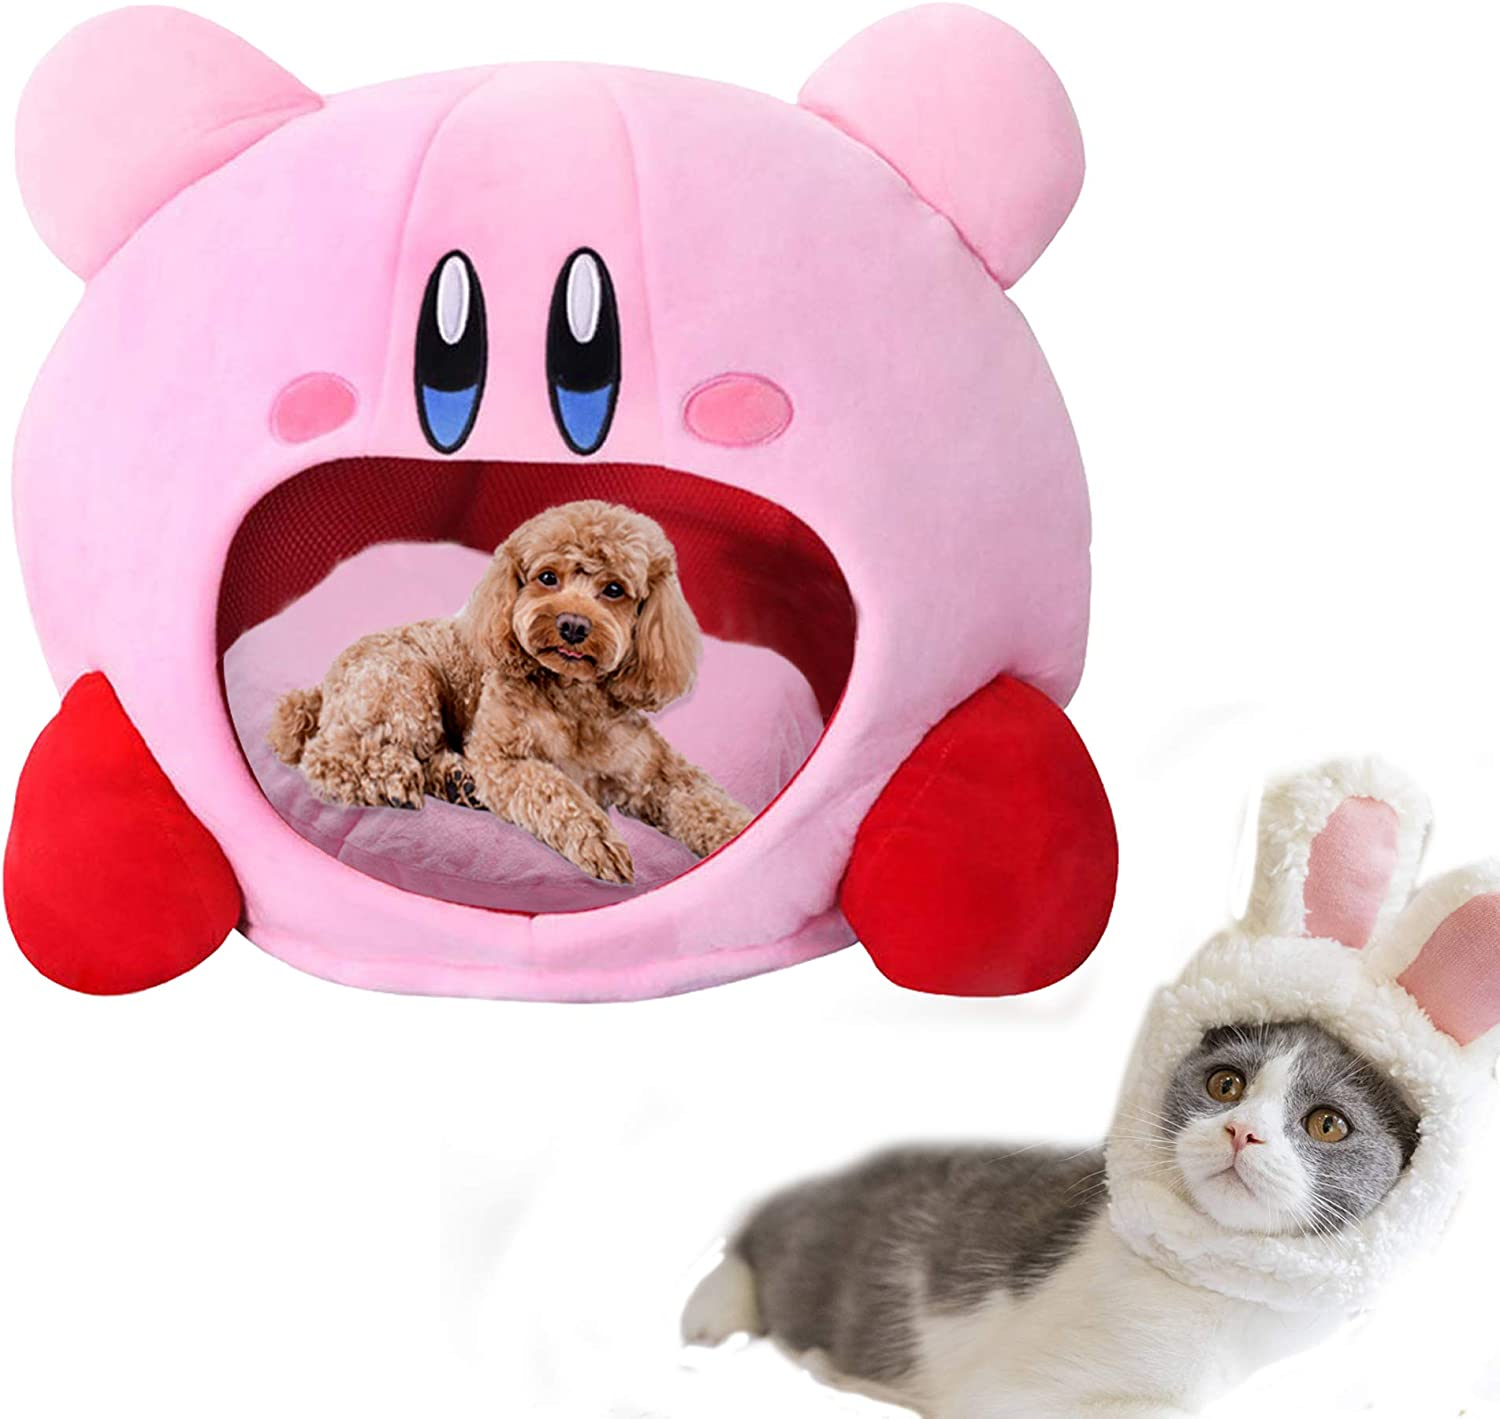 Amazon Com Puppy Pet Cat Dog Soft Nest Dog Bed Cute Kirby Plush Small Pet House Sleeping Mat Pet Supplies Beds For Medium Cats Pet Supplies